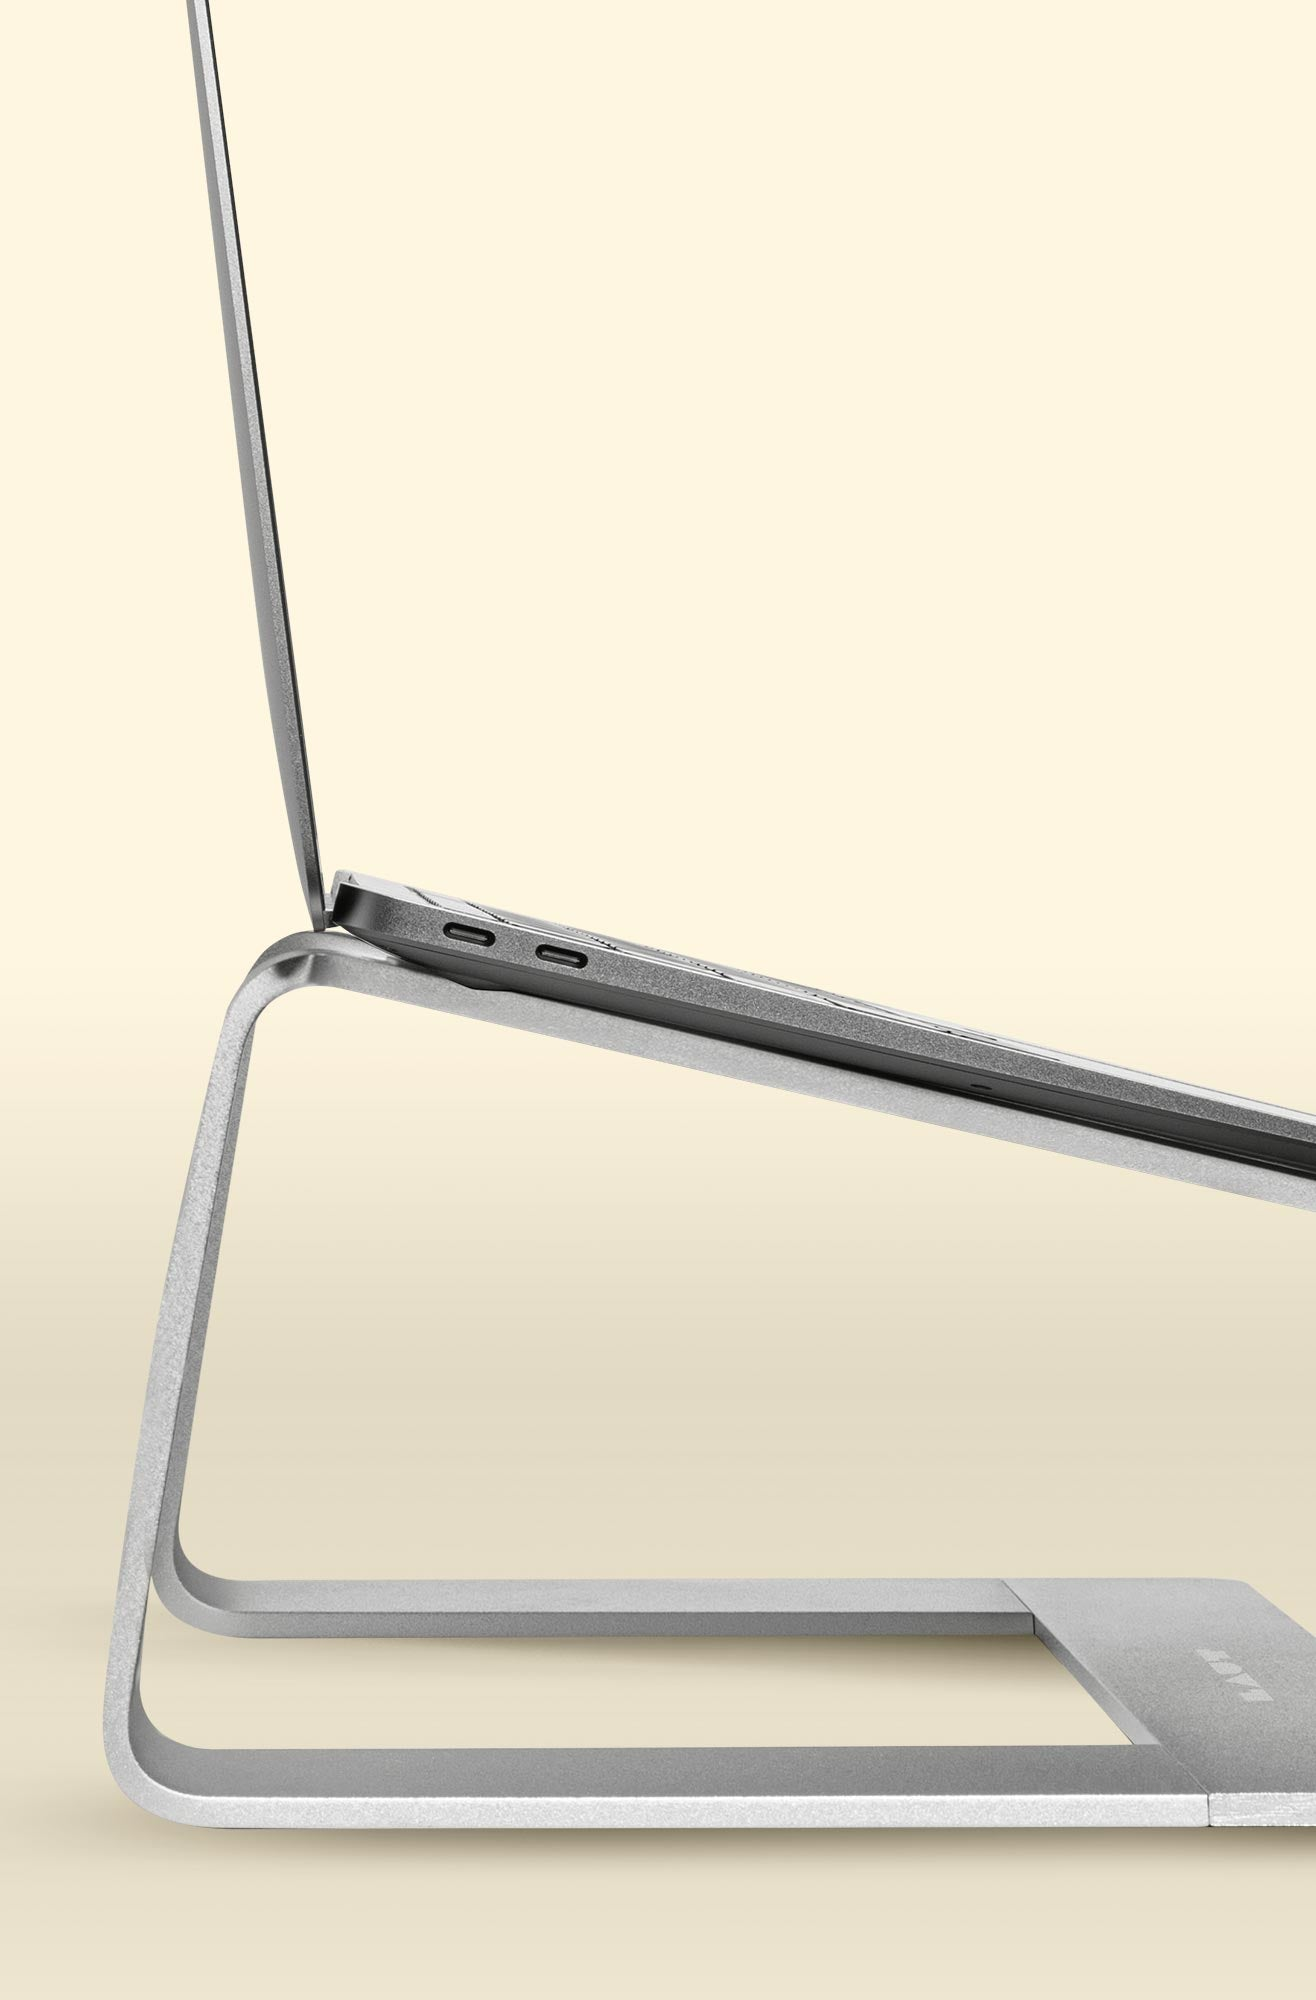 LAUT - WORK STATION PRO - Laptop / Tablet Stand